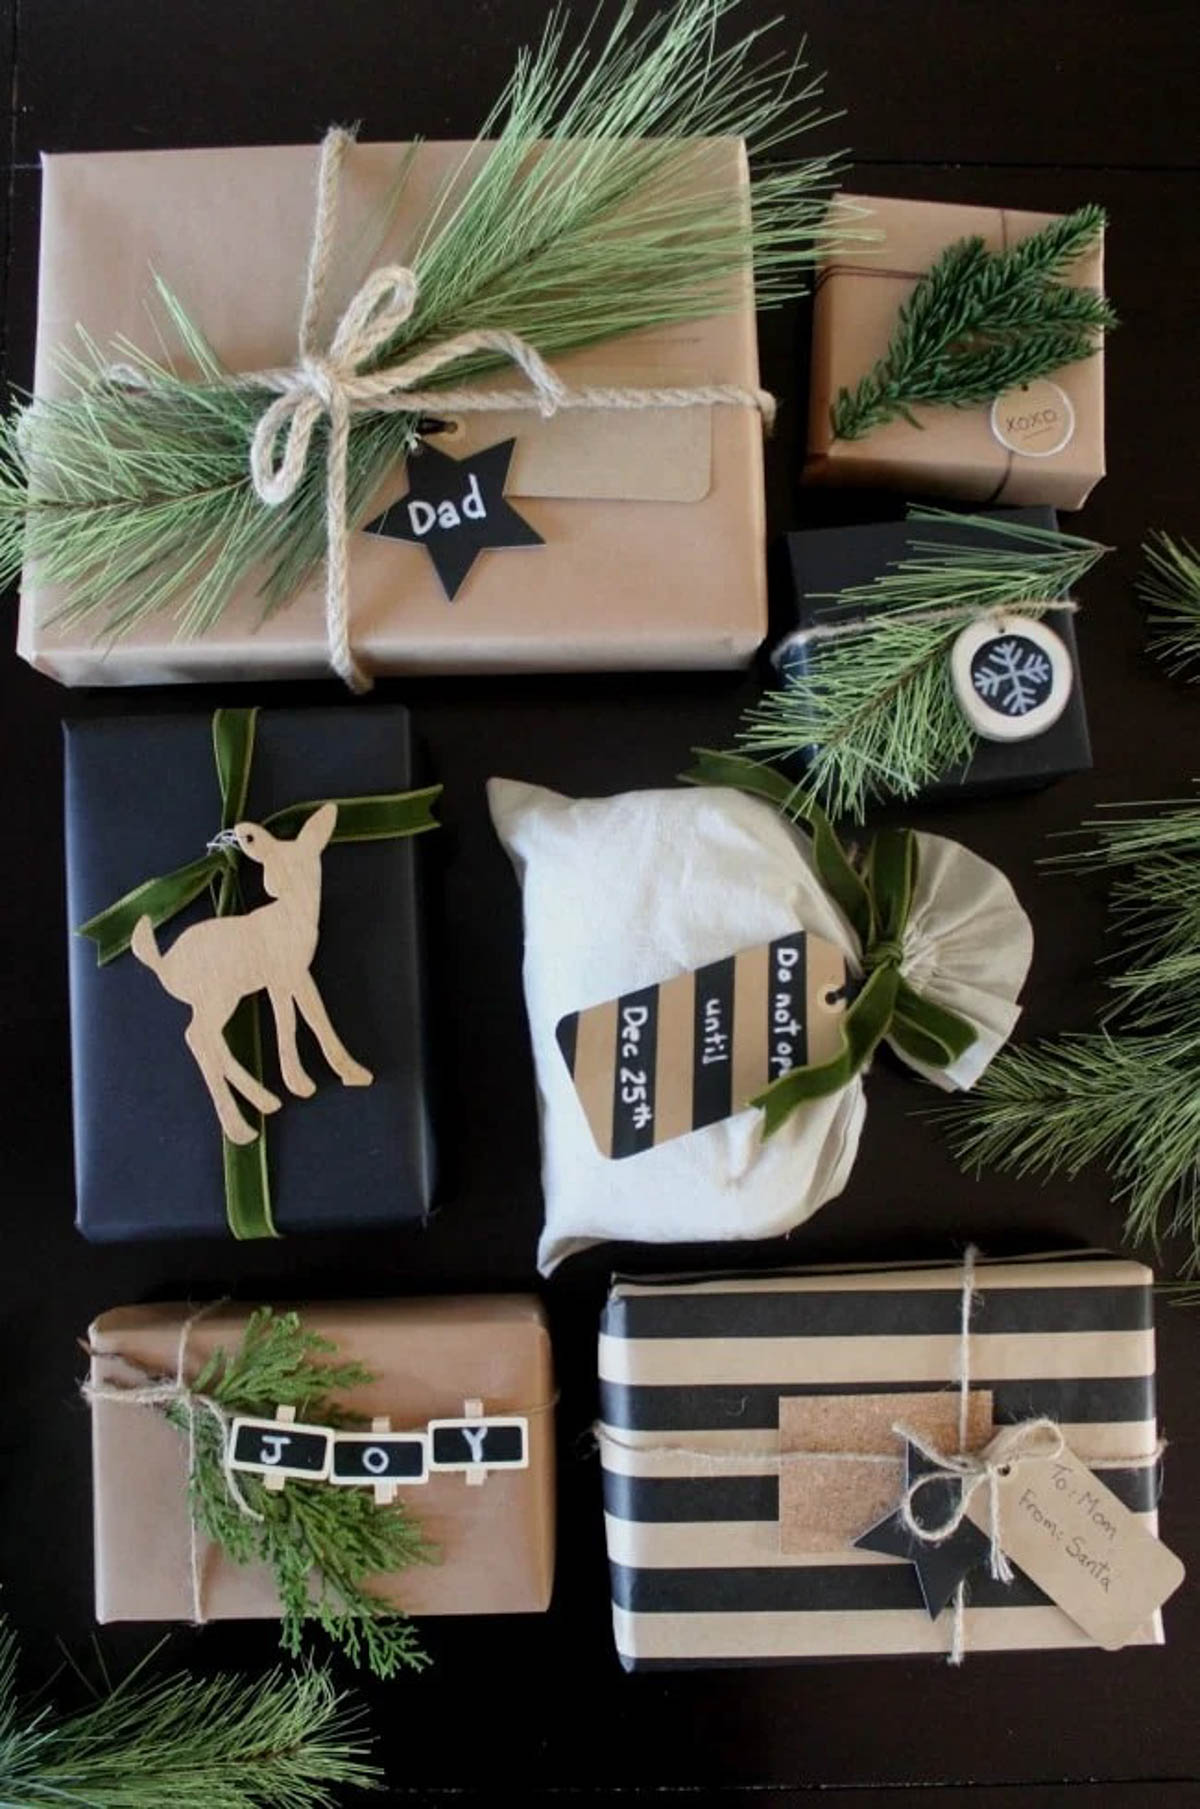 Multiple gifts wrapped in rustic gift wrapping paper